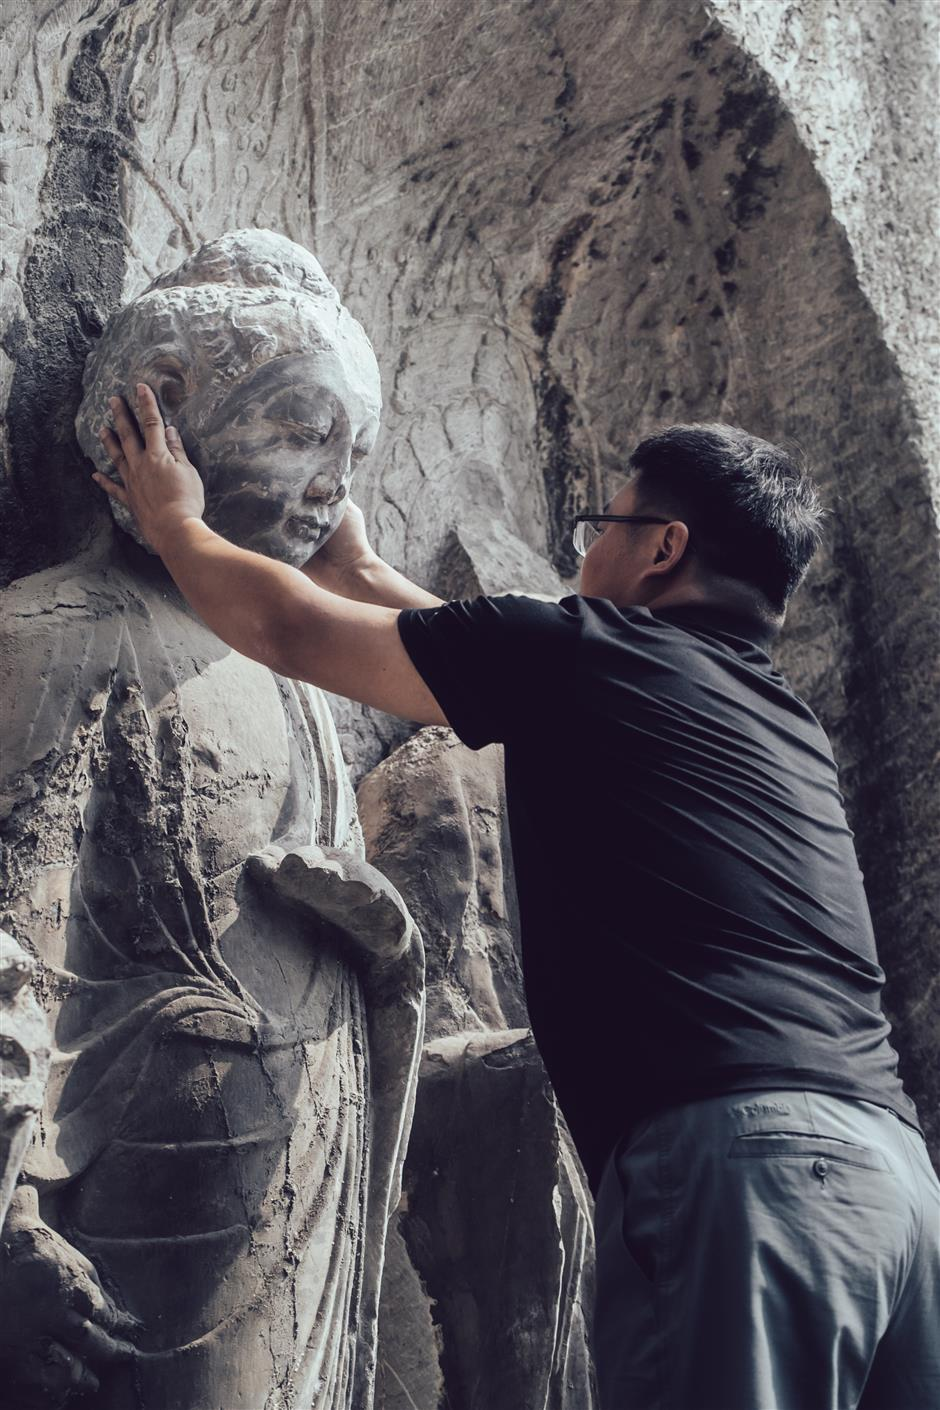 Buddhas head restored on statue with 3D tech